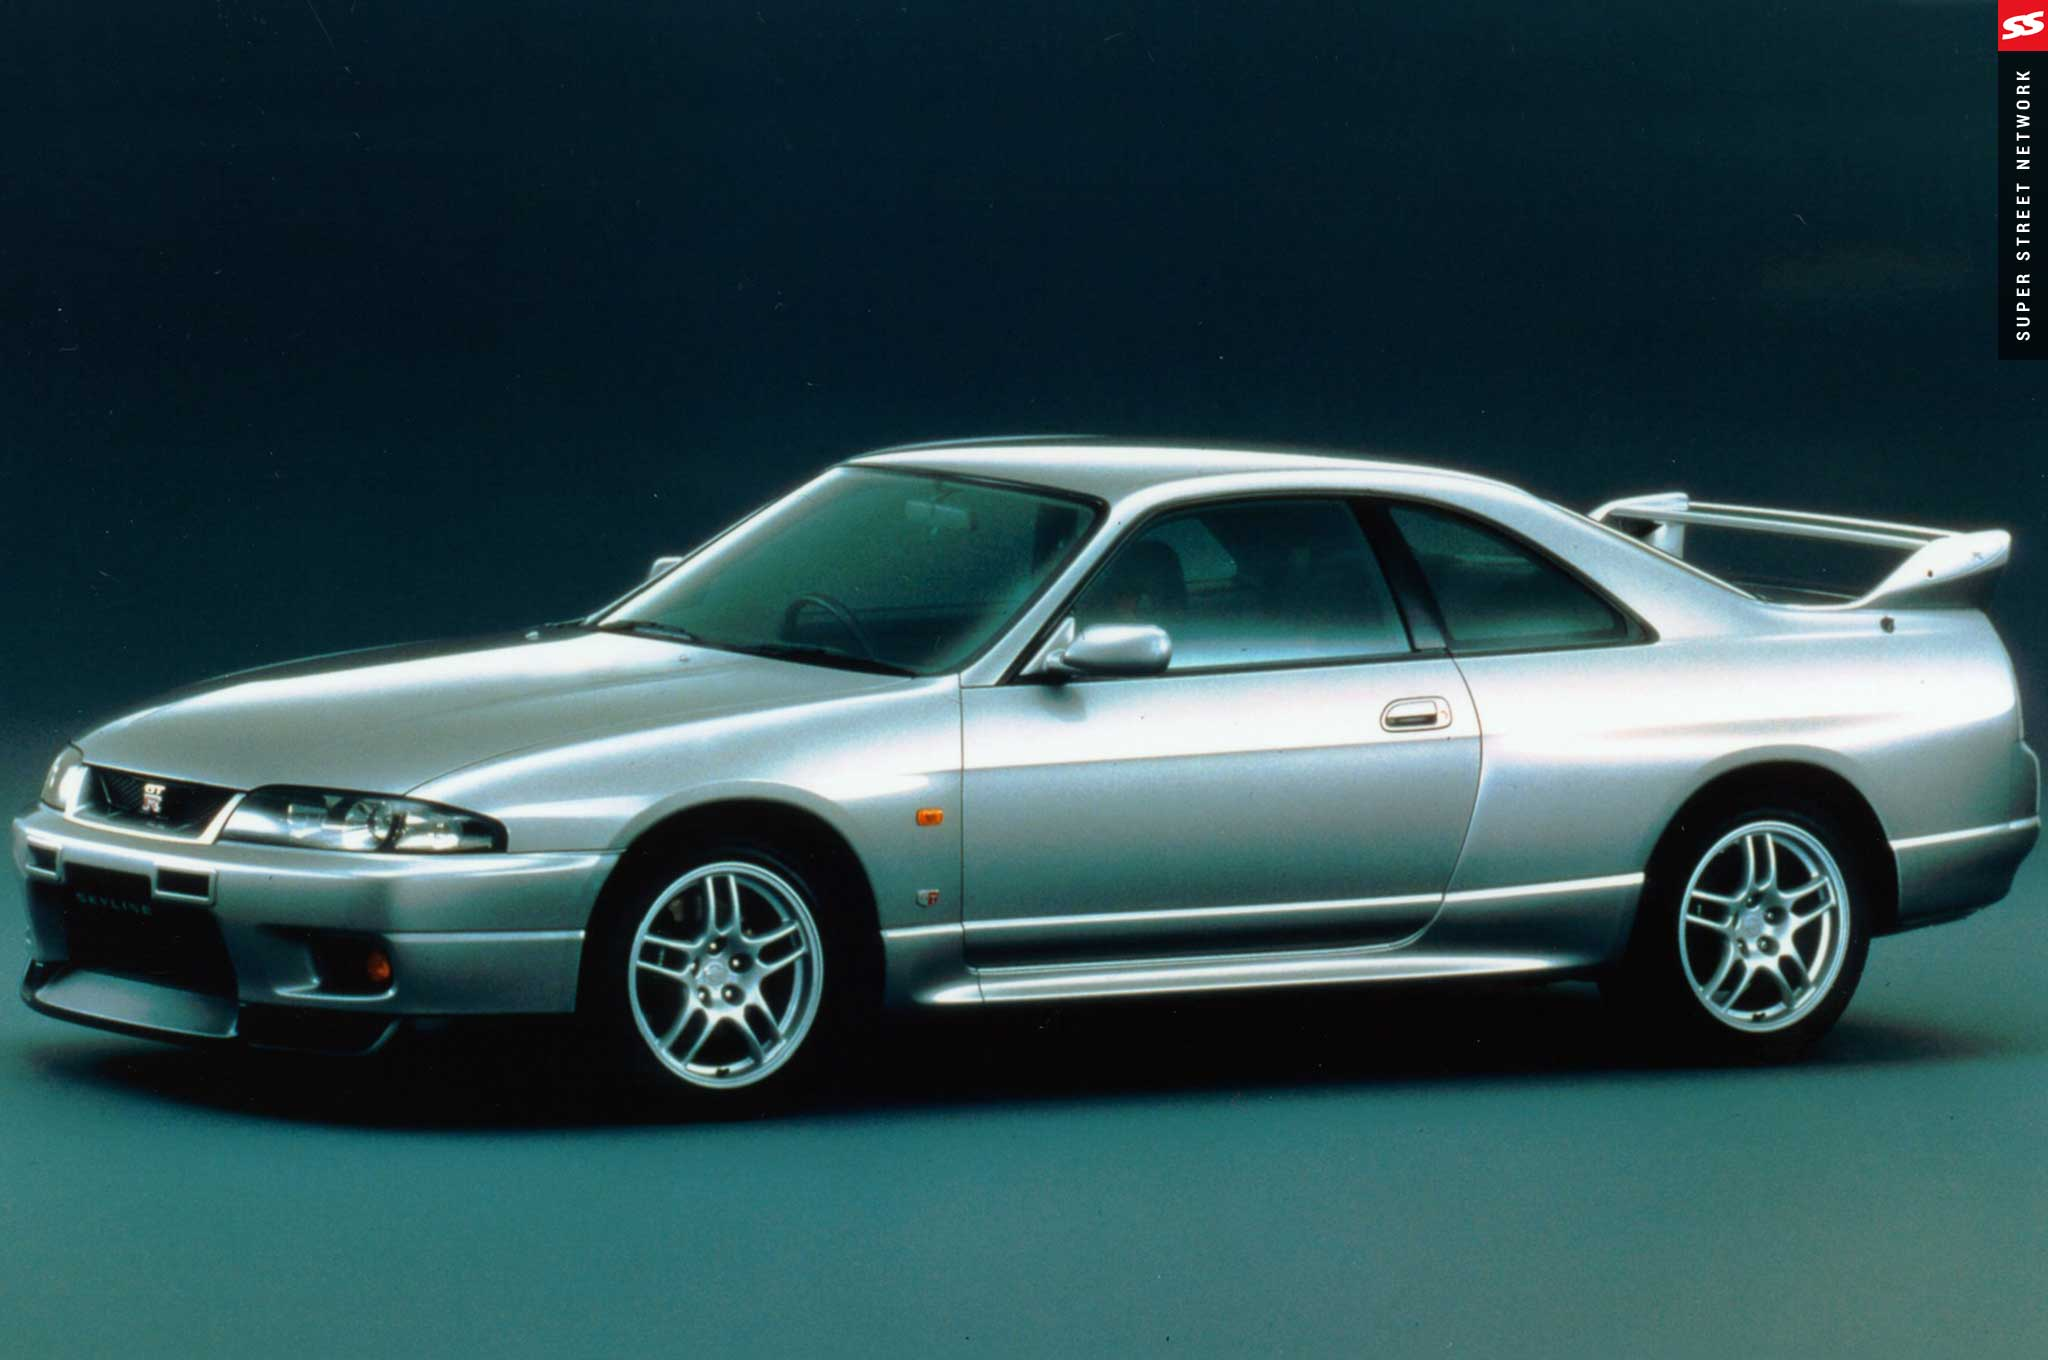 History and facts about the Nissan Skyline GT-R